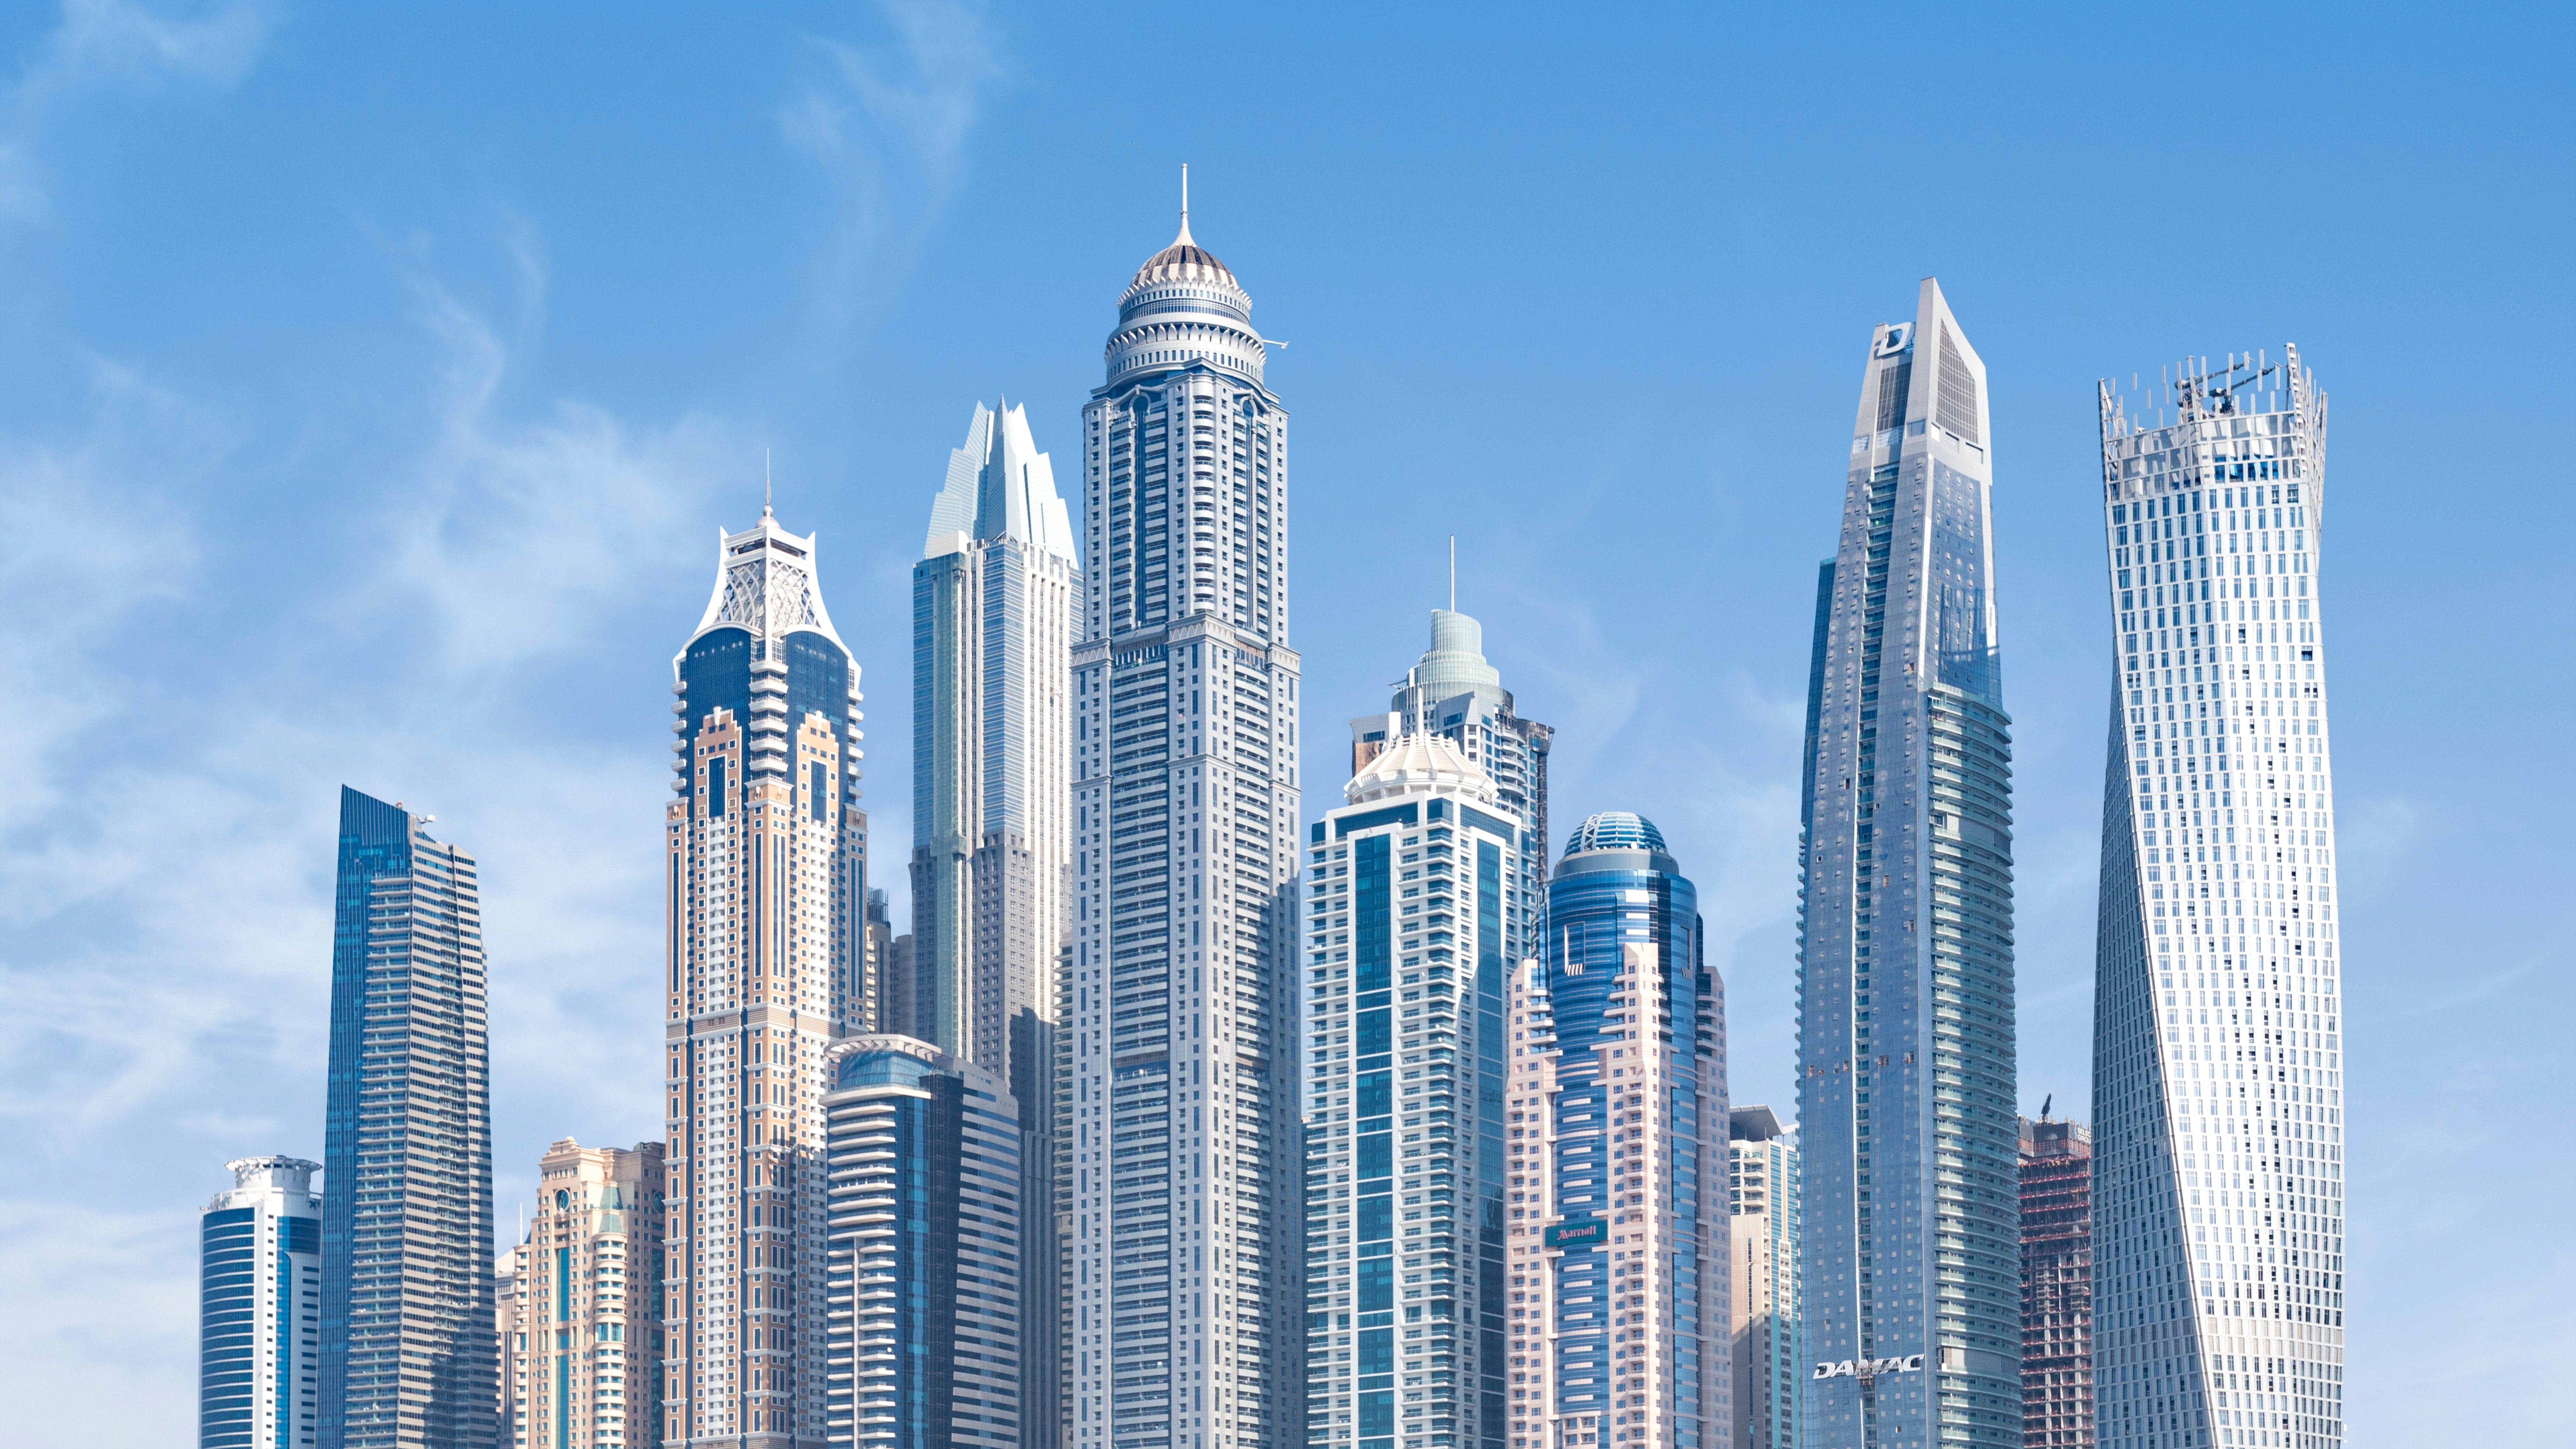 Best Buildings To Investments